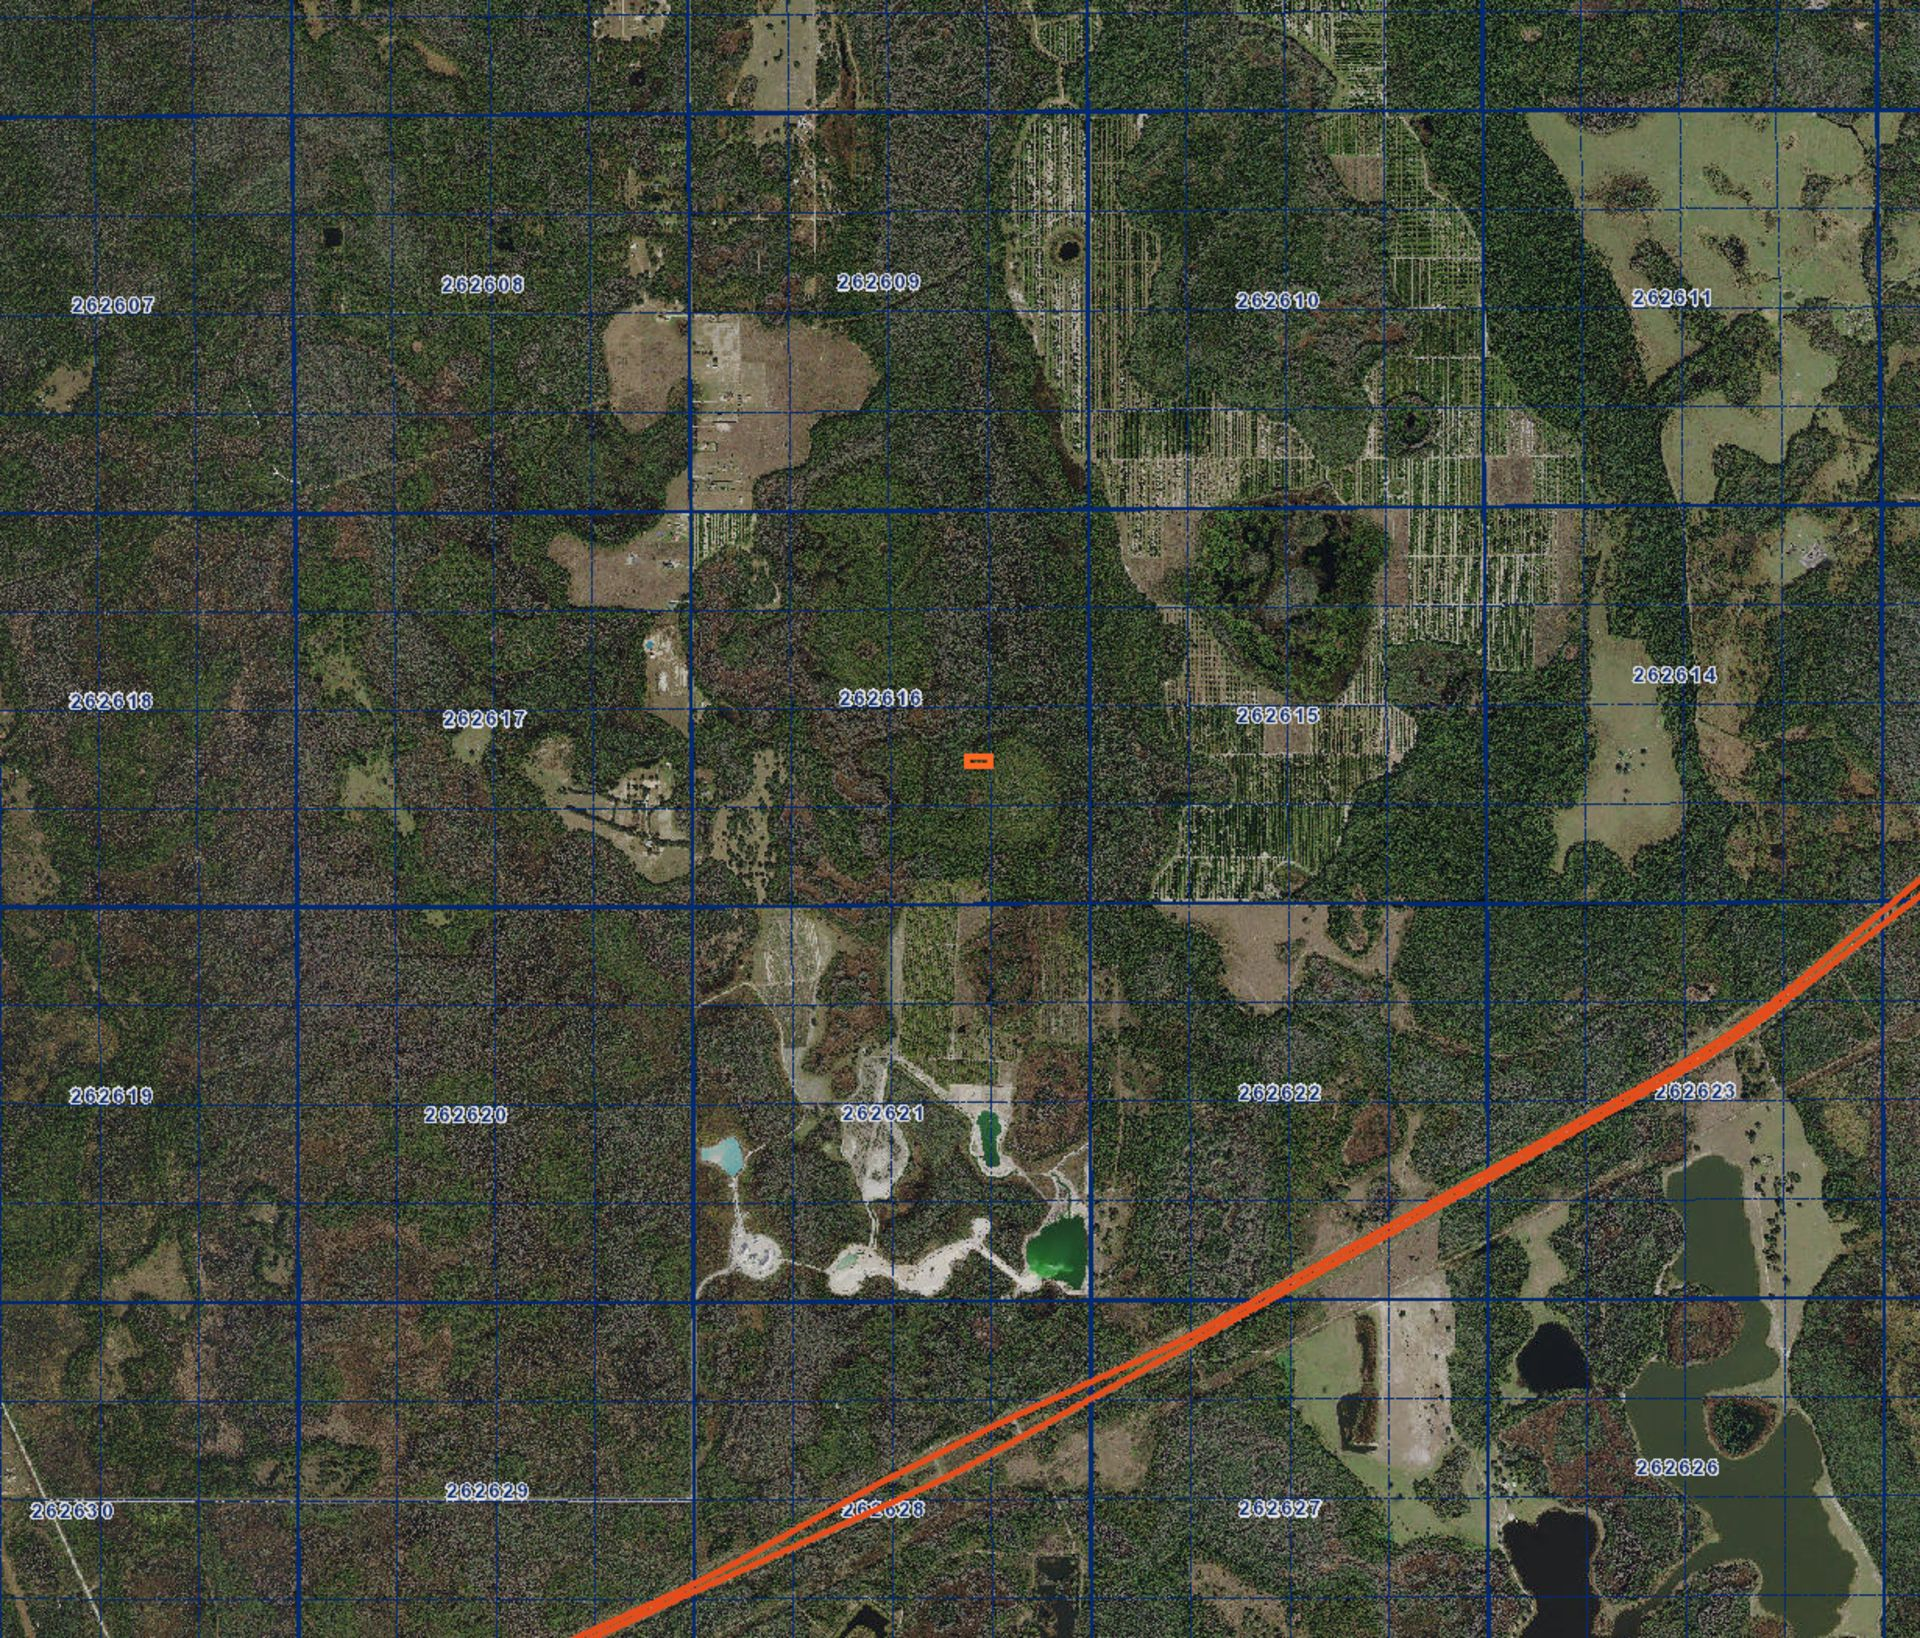 One Acre in Peaceful Polk County, Florida! - Image 4 of 4